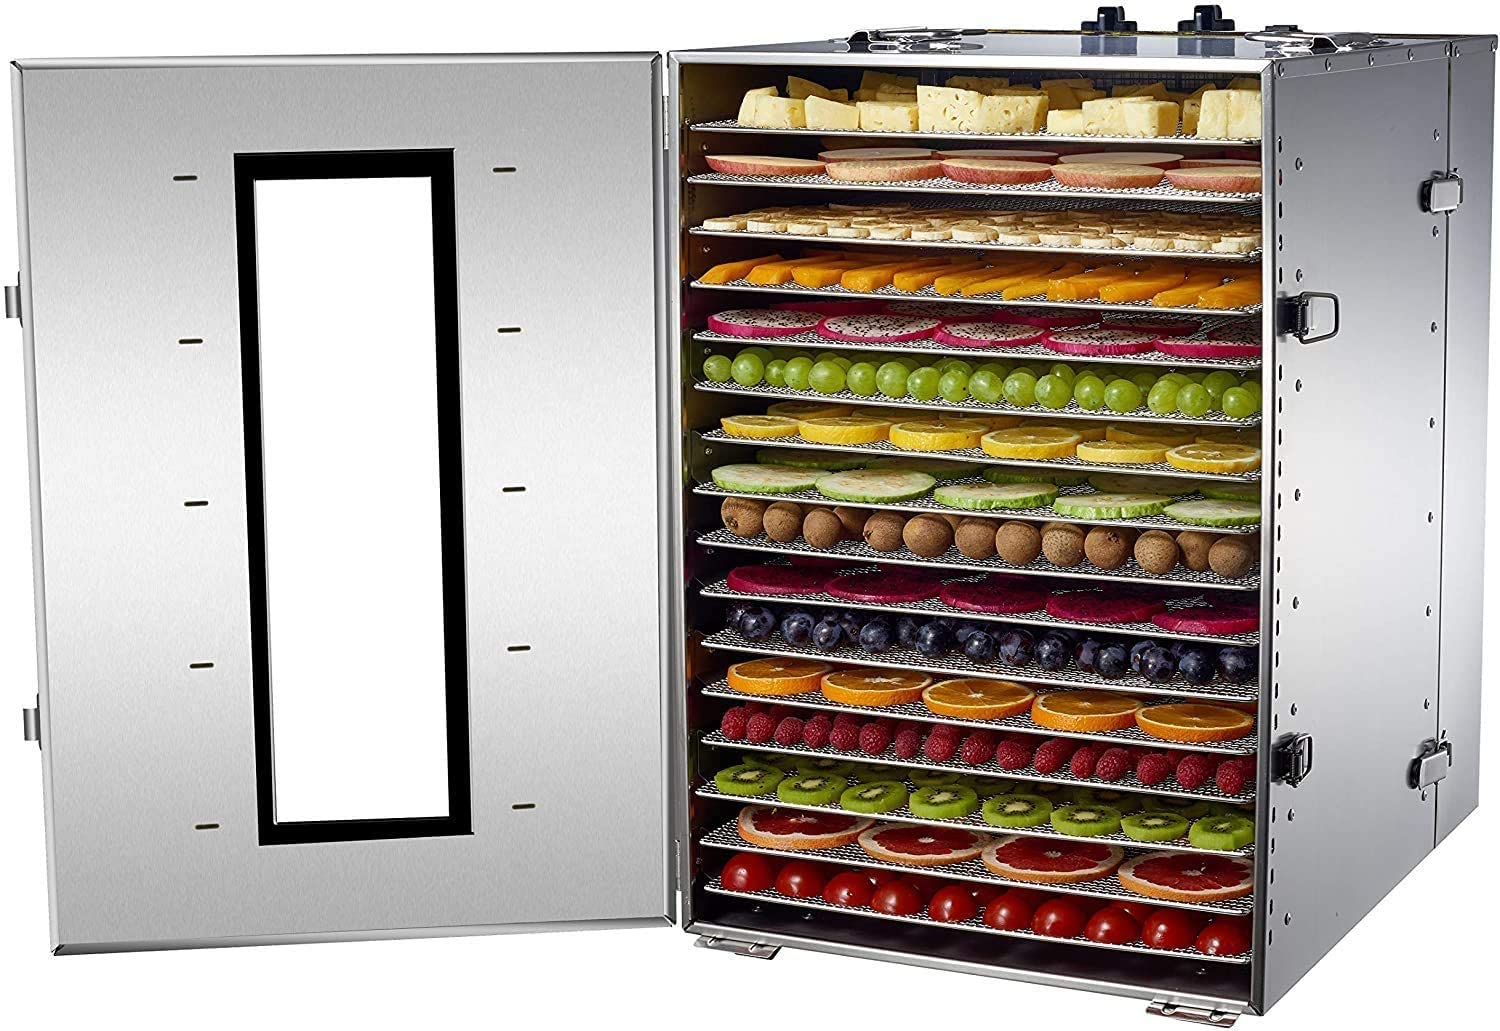 NJTFHU Large Commercial Food Dehydrator 16 Trays Food Dryer Stainless Steel 100-200F Temperature Control Adjustable 15 Hour Timer for Jerky, Herb, Meat, Beef, Fruit and Vegetables